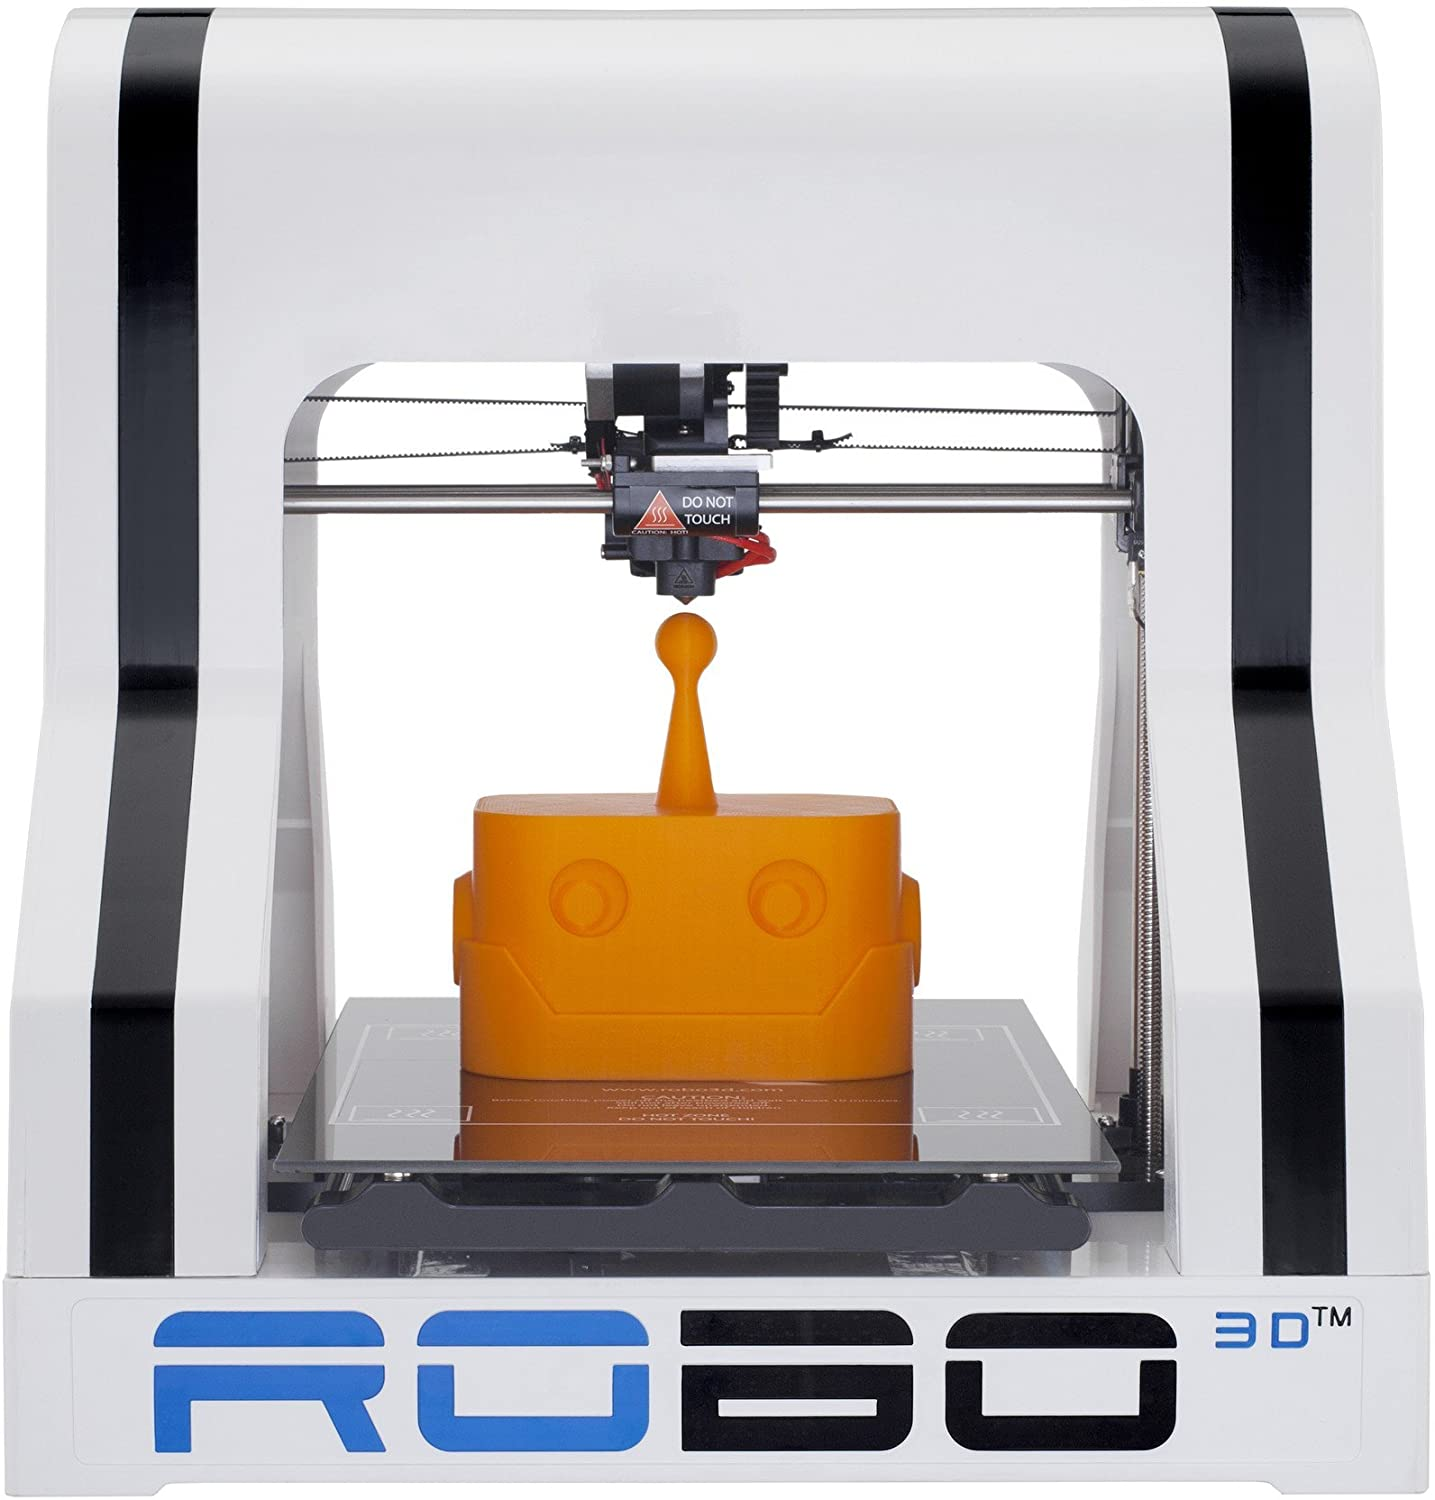 Robo 3d R1 Plus Printer Reviews-2019-2020-Best